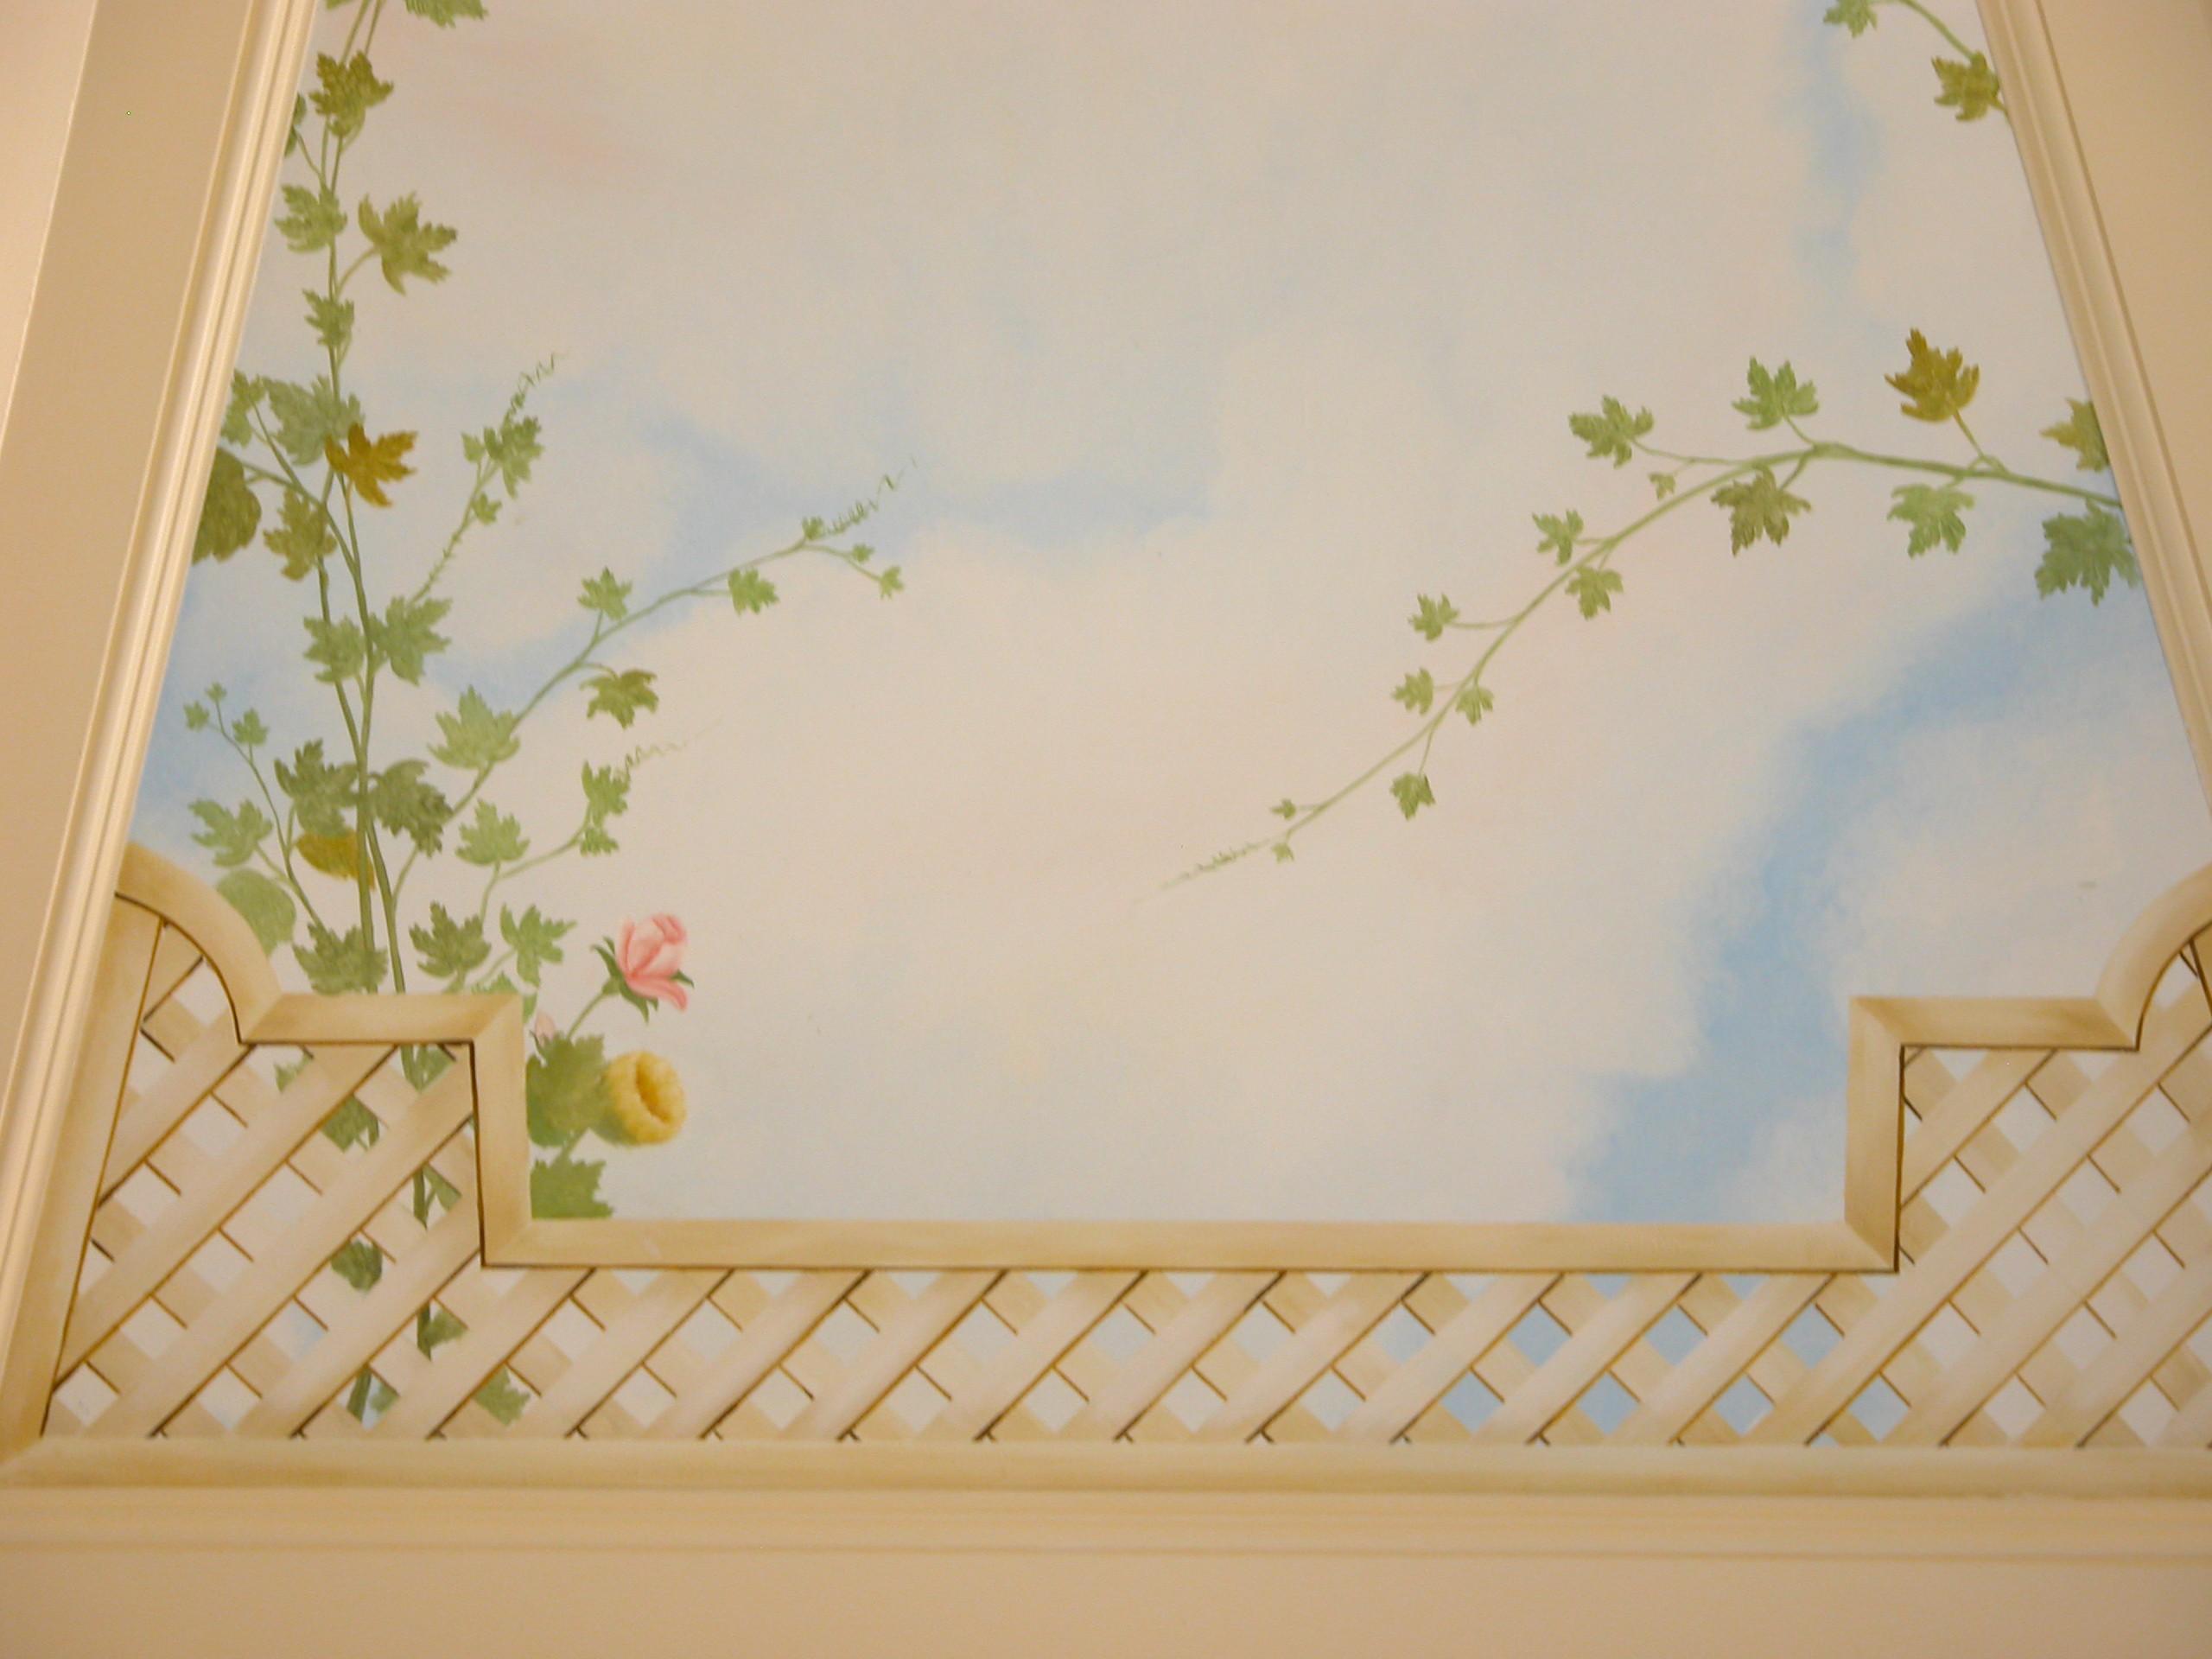 Mural Ceiling Closter NJ